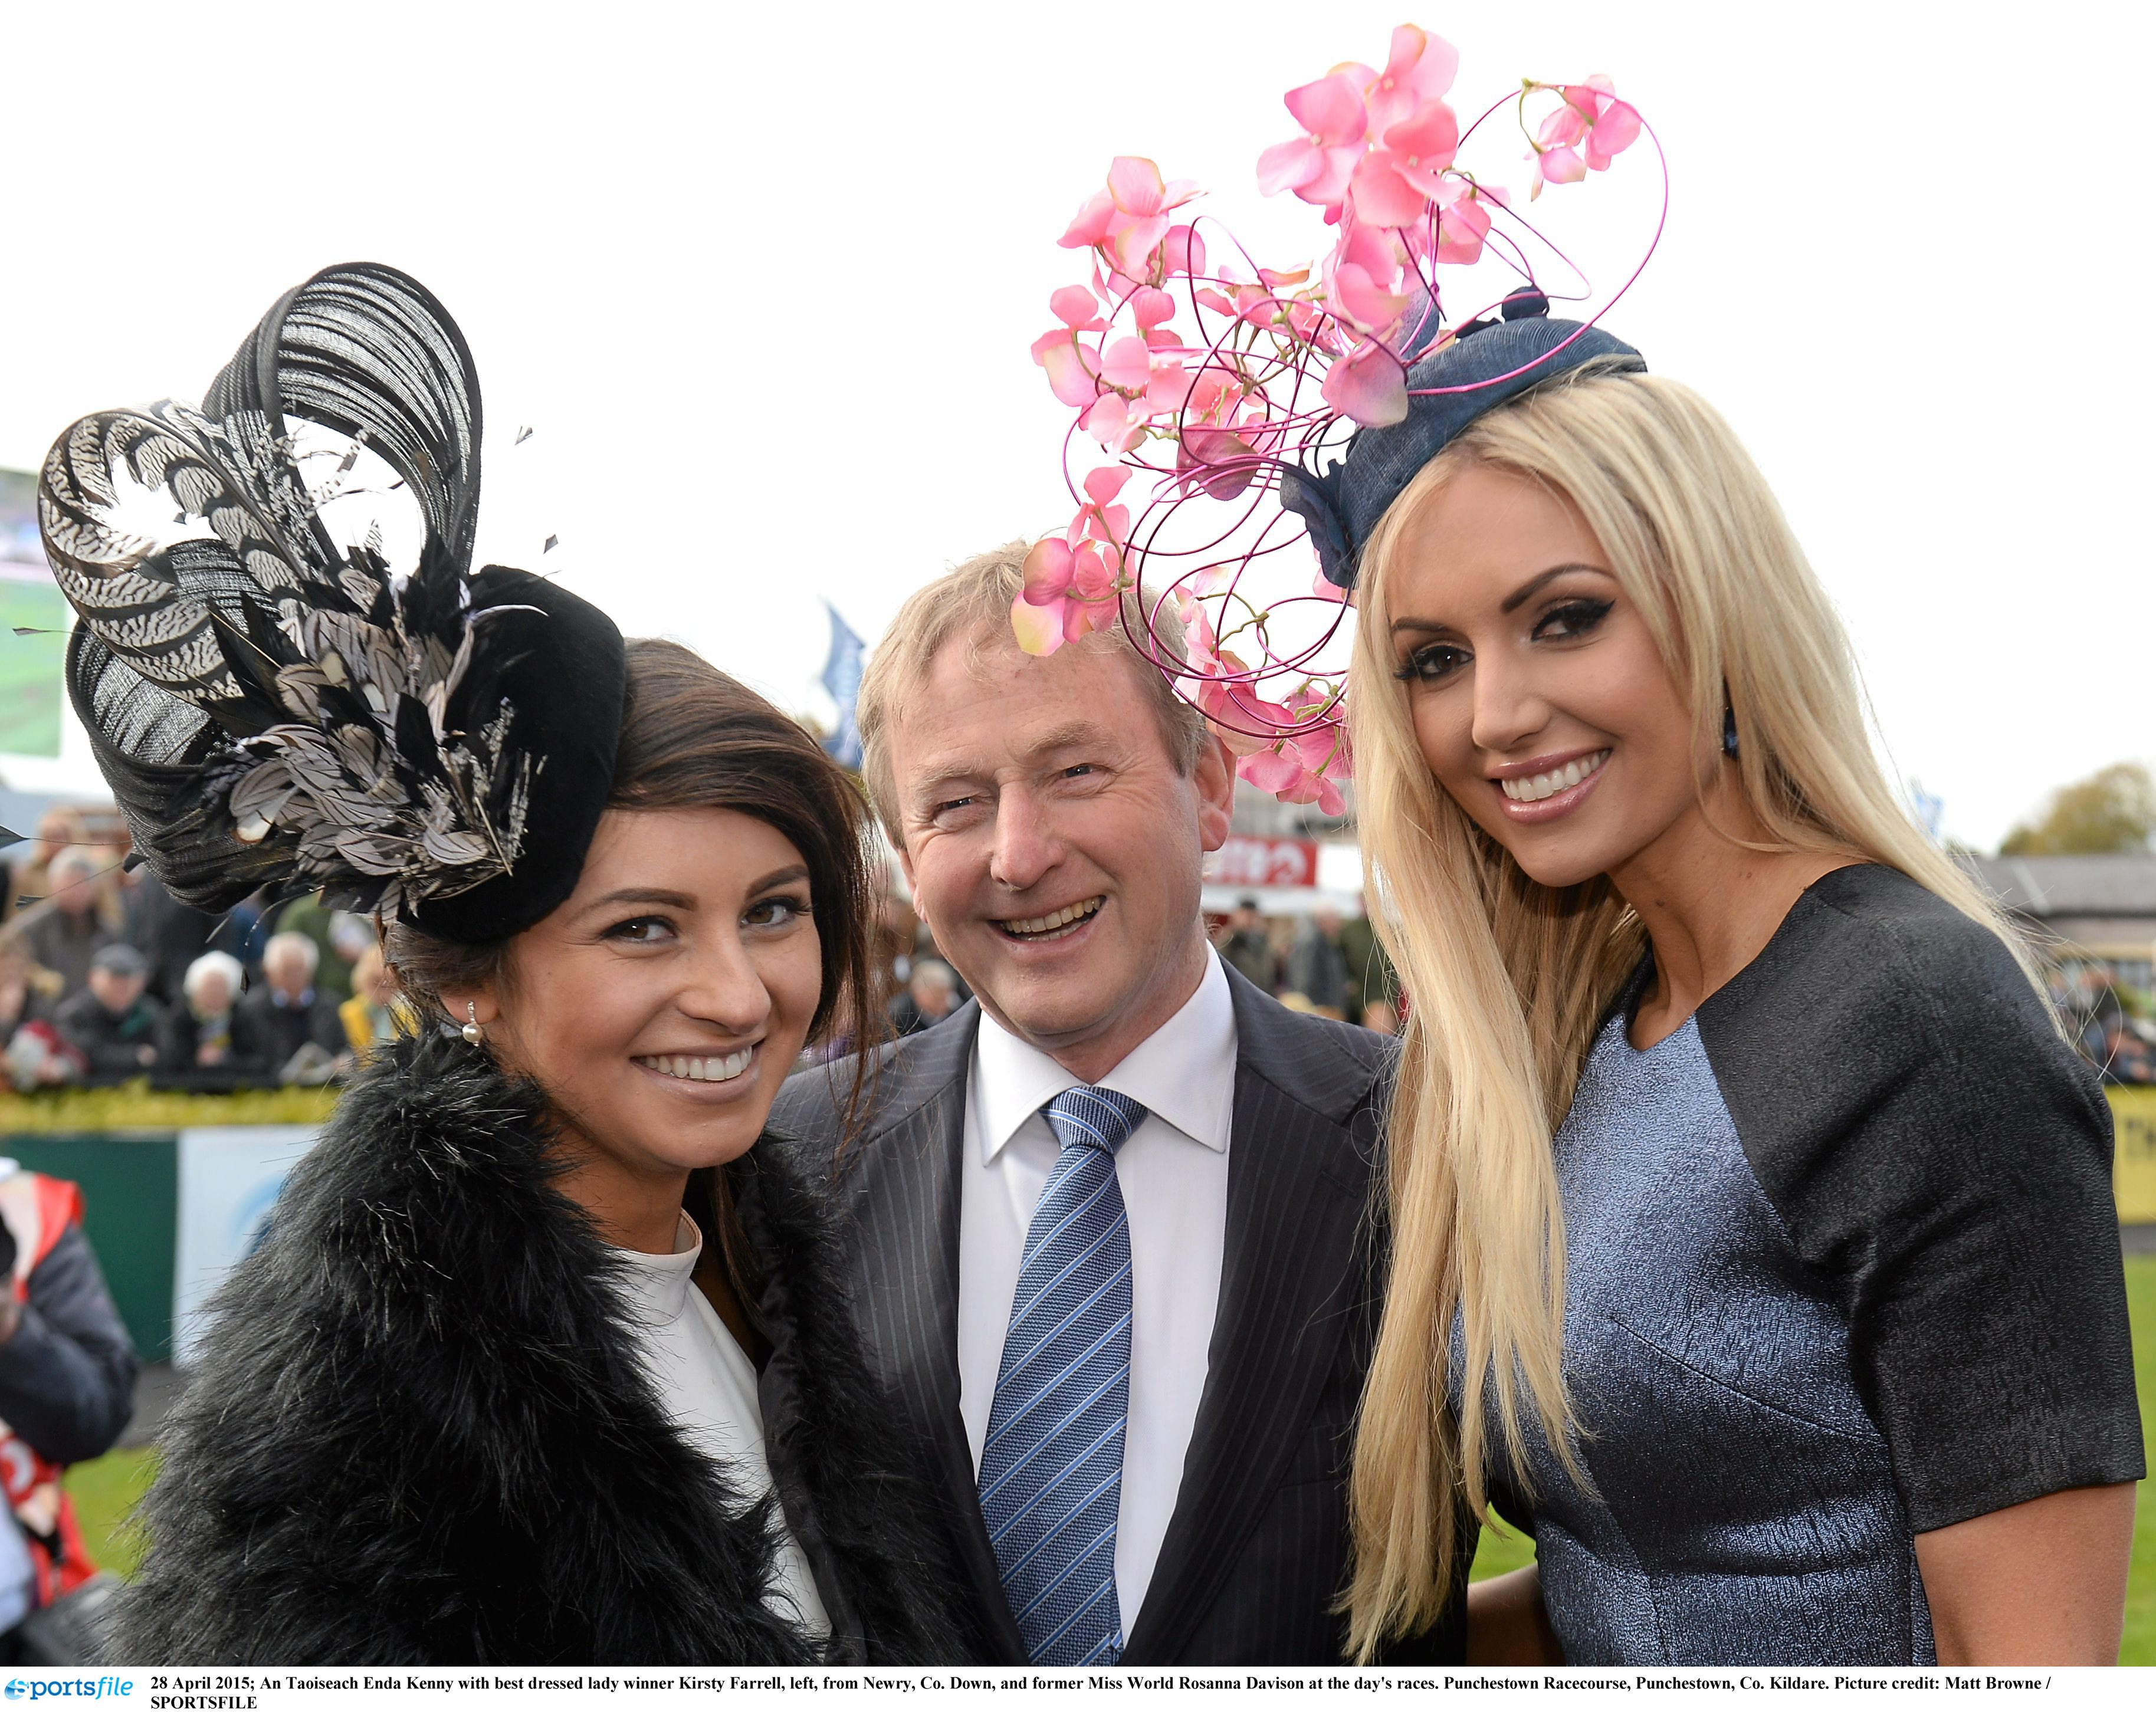 Best dressed lady with the Taoiseach Enda Kenny and Rosanna Davison